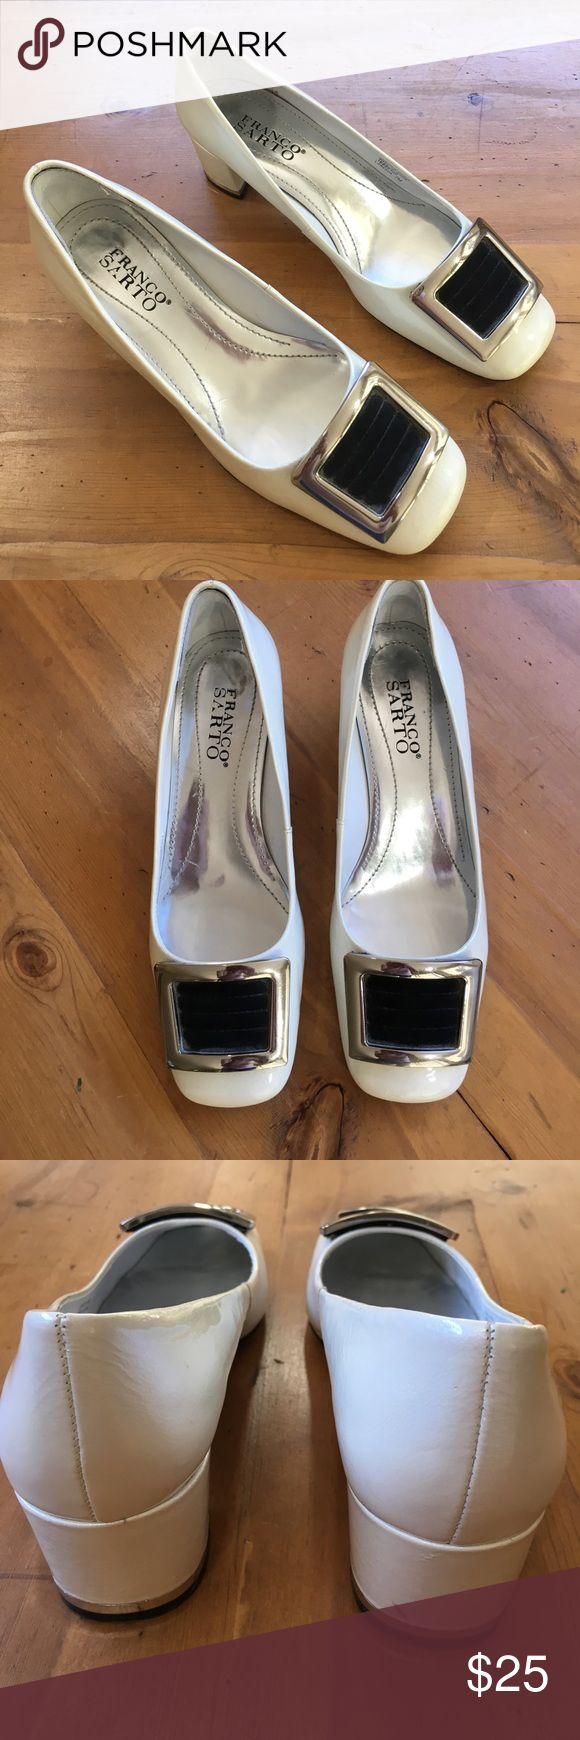 Franco Sarto Patten Leather Off White Shoe Great condition off white in color upper patent leather size 7 silver buckle accent black brown leather velvet in buckle silver accent in heel one small scuff on heel see pic 2 inch heel super cute comfortable love the shoes💕 Franco Sarto Shoes